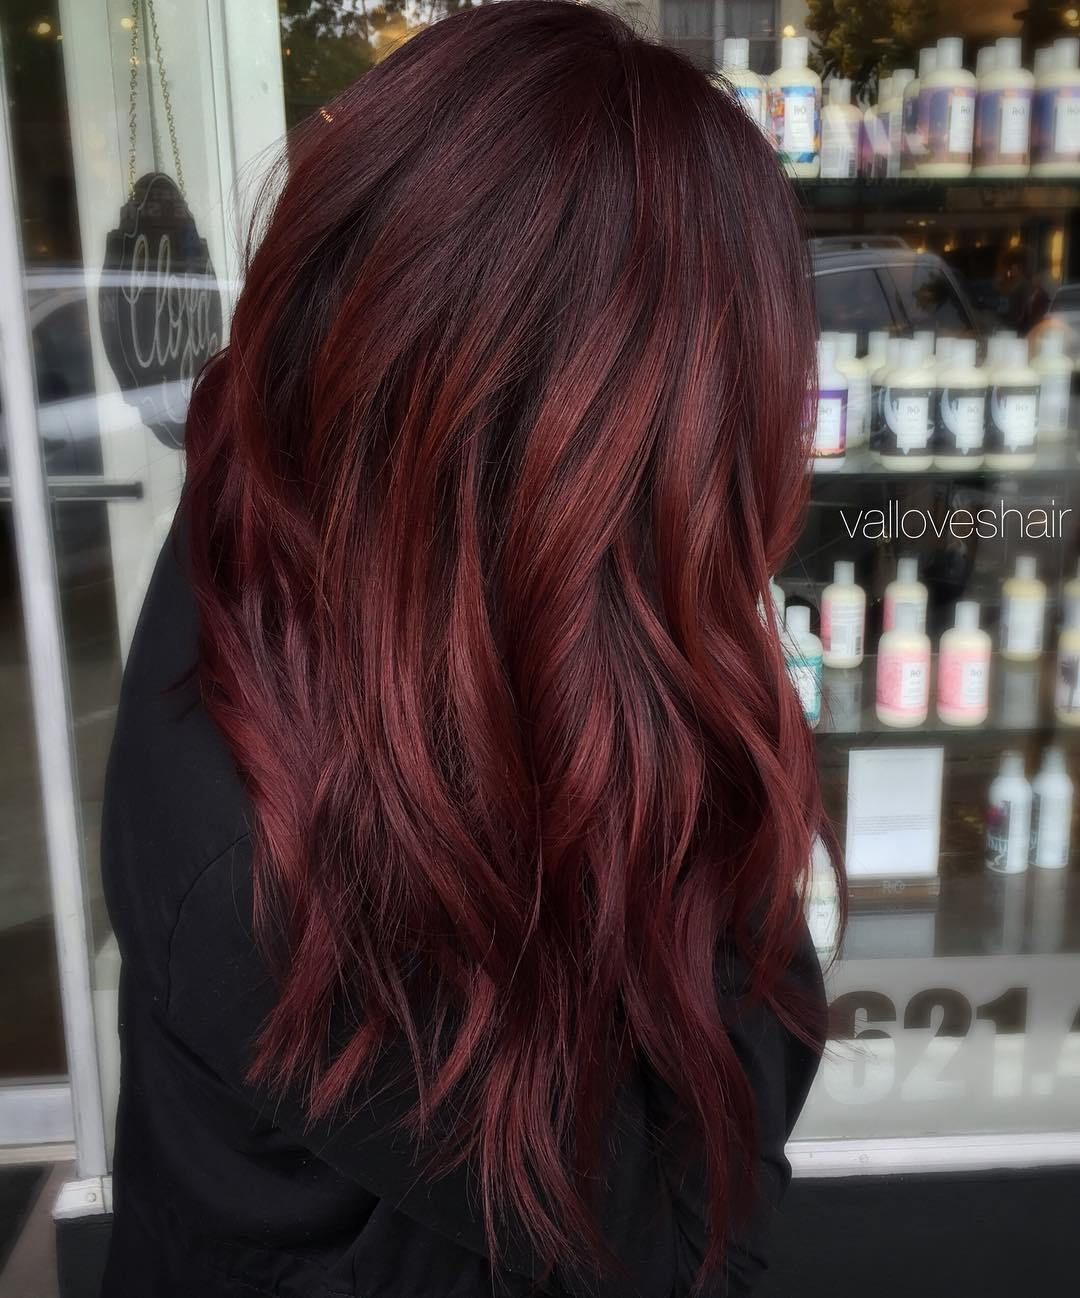 Pin By Anetka Boska On Hair Saaaaalon Dark Burgundy Hair Hair Color Auburn Hair Styles